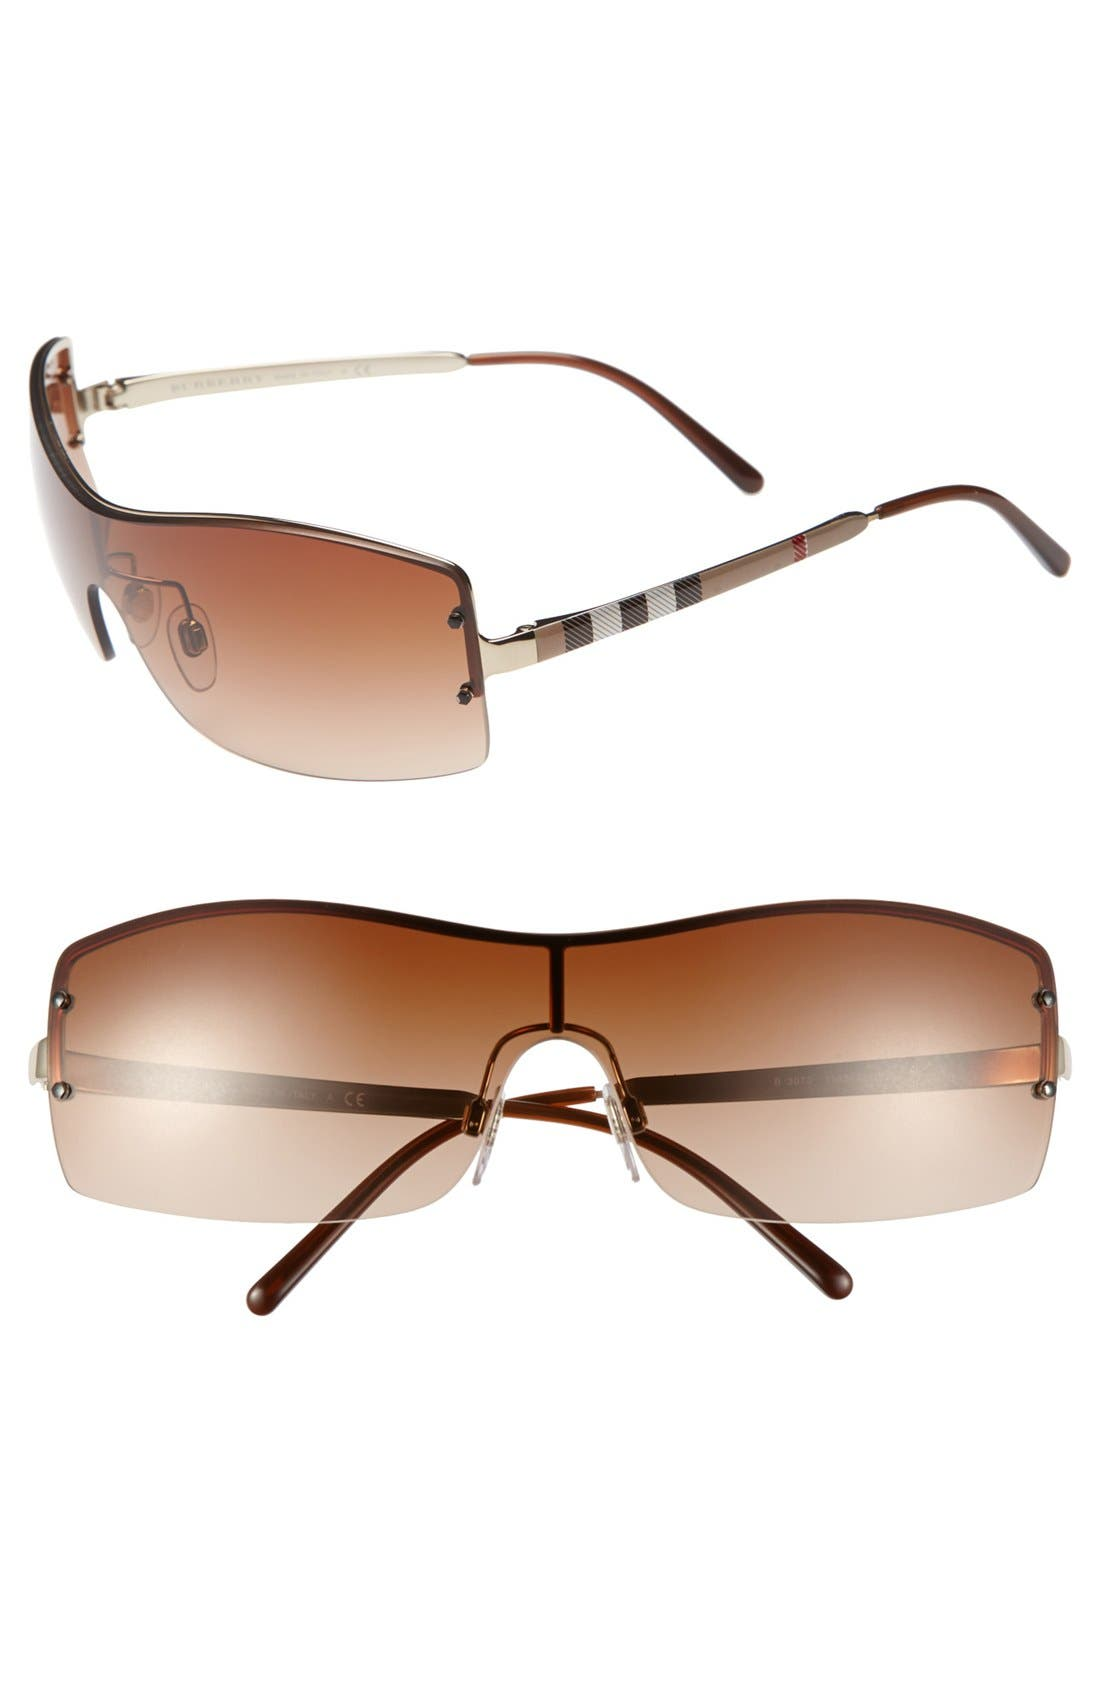 Alternate Image 1 Selected - Burberry 'House Check Foil' 70mm Shield Sunglasses